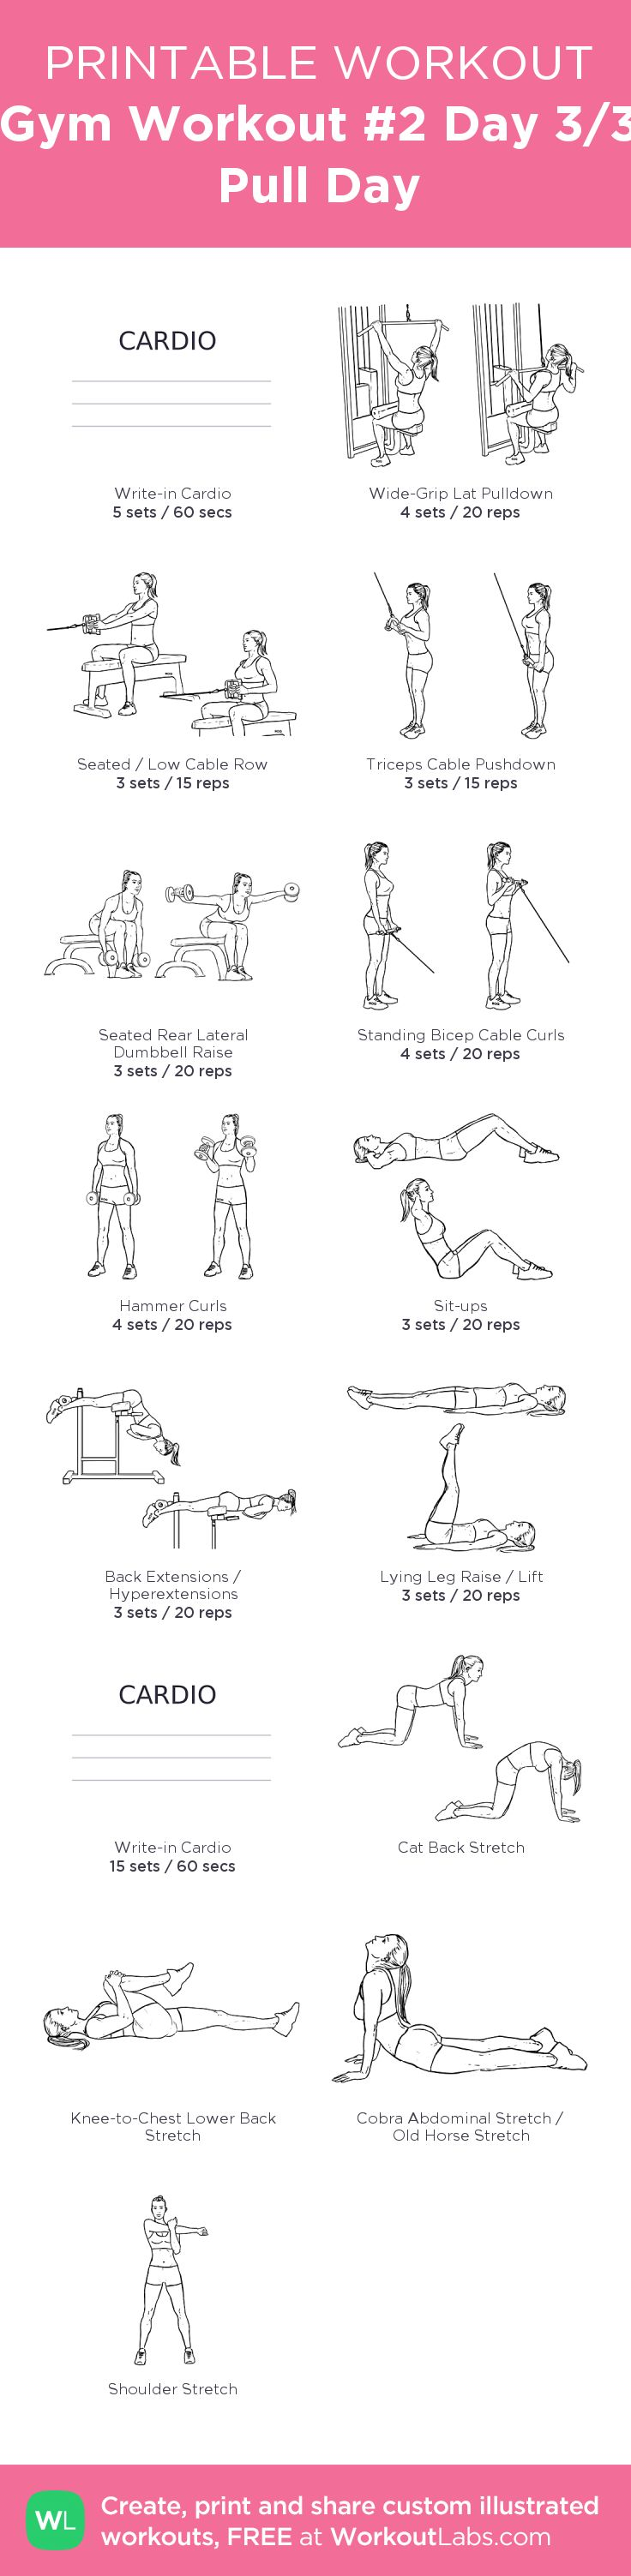 Gym Workout #2 Day 3/3 Pull Day –my custom workout created at WorkoutLabs.com • Click through to download as printable PDF! #customworkout